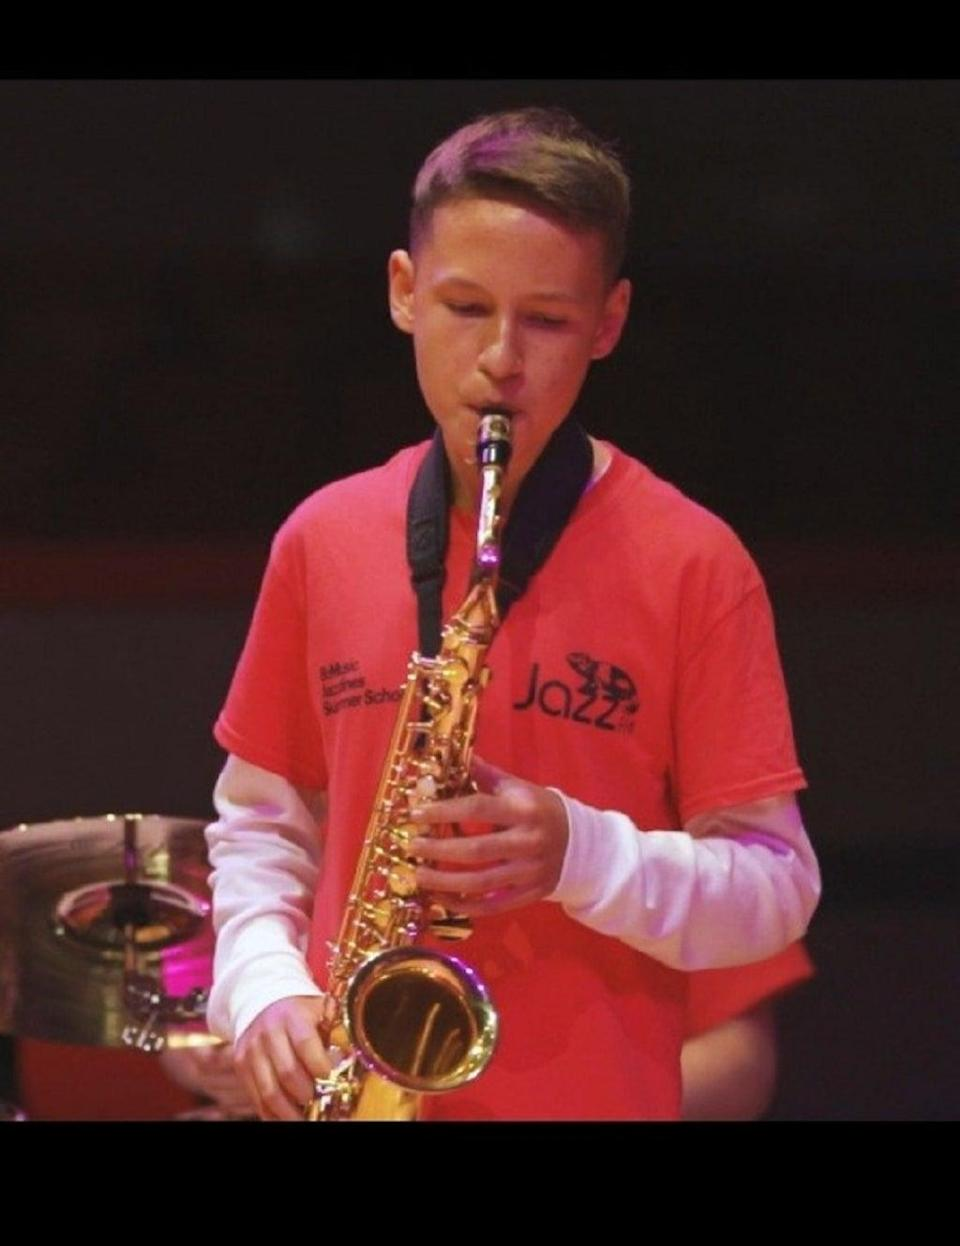 Louis Watkiss was a talented saxophonist. (Staffordshire Police/PA)